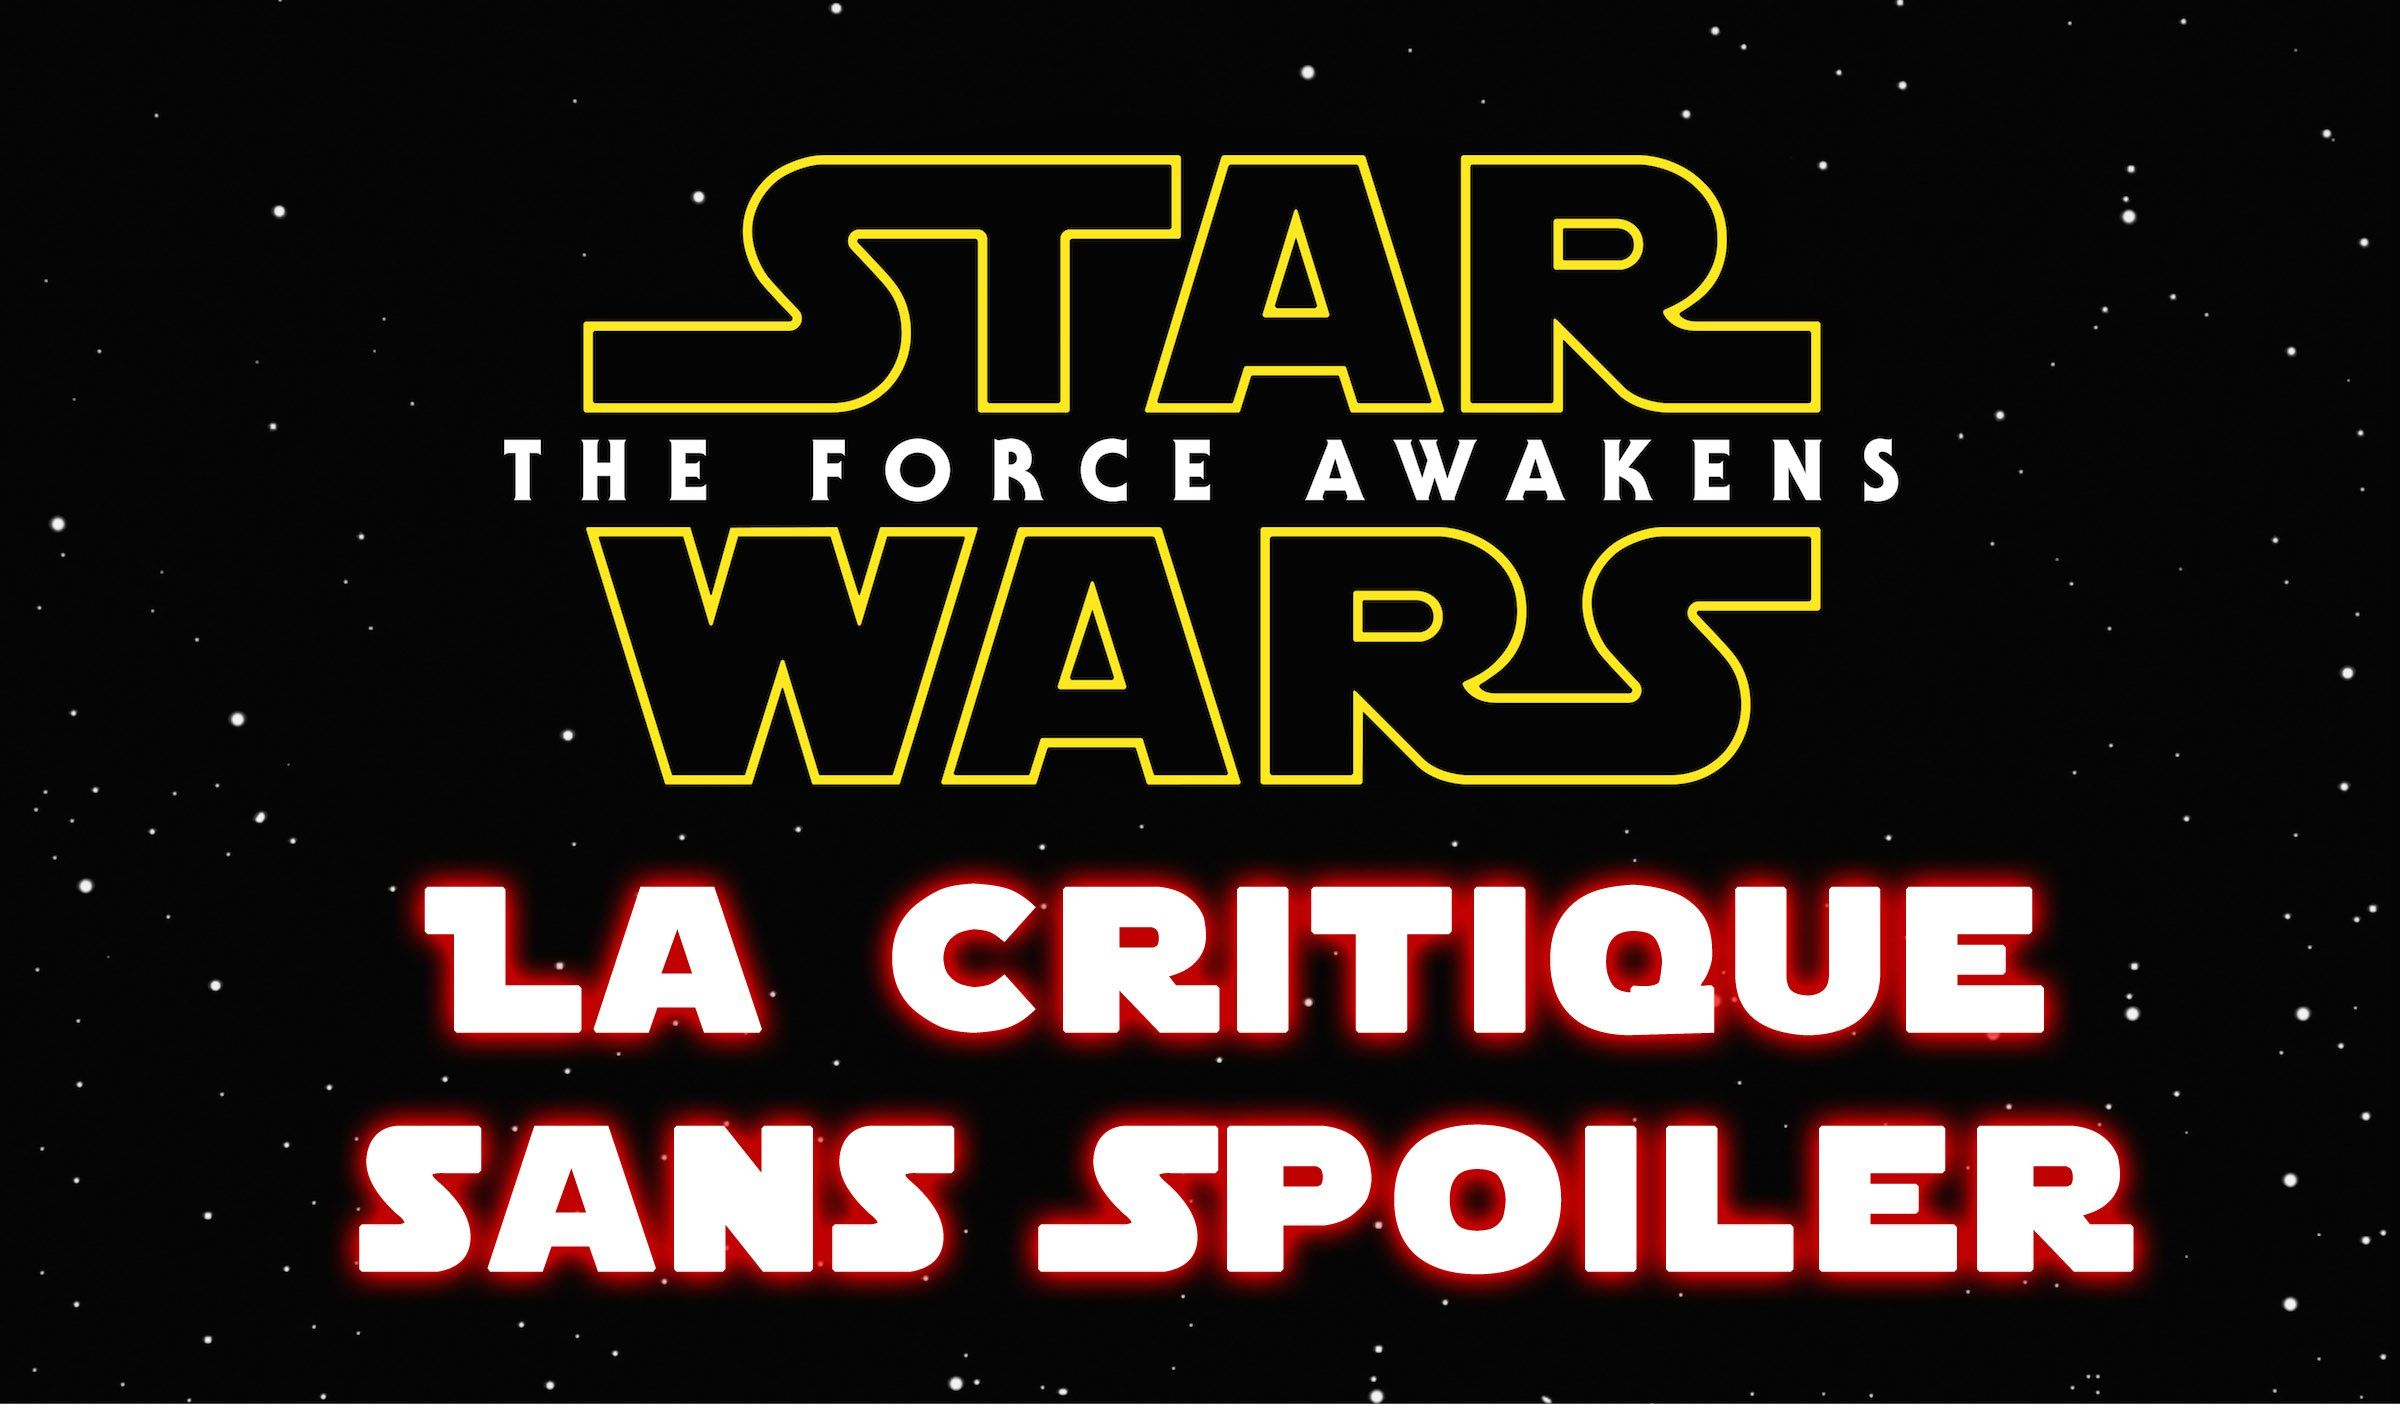 Star Wars Episode VII Le Réveil de la Force : la critique sans spoiler 7/10